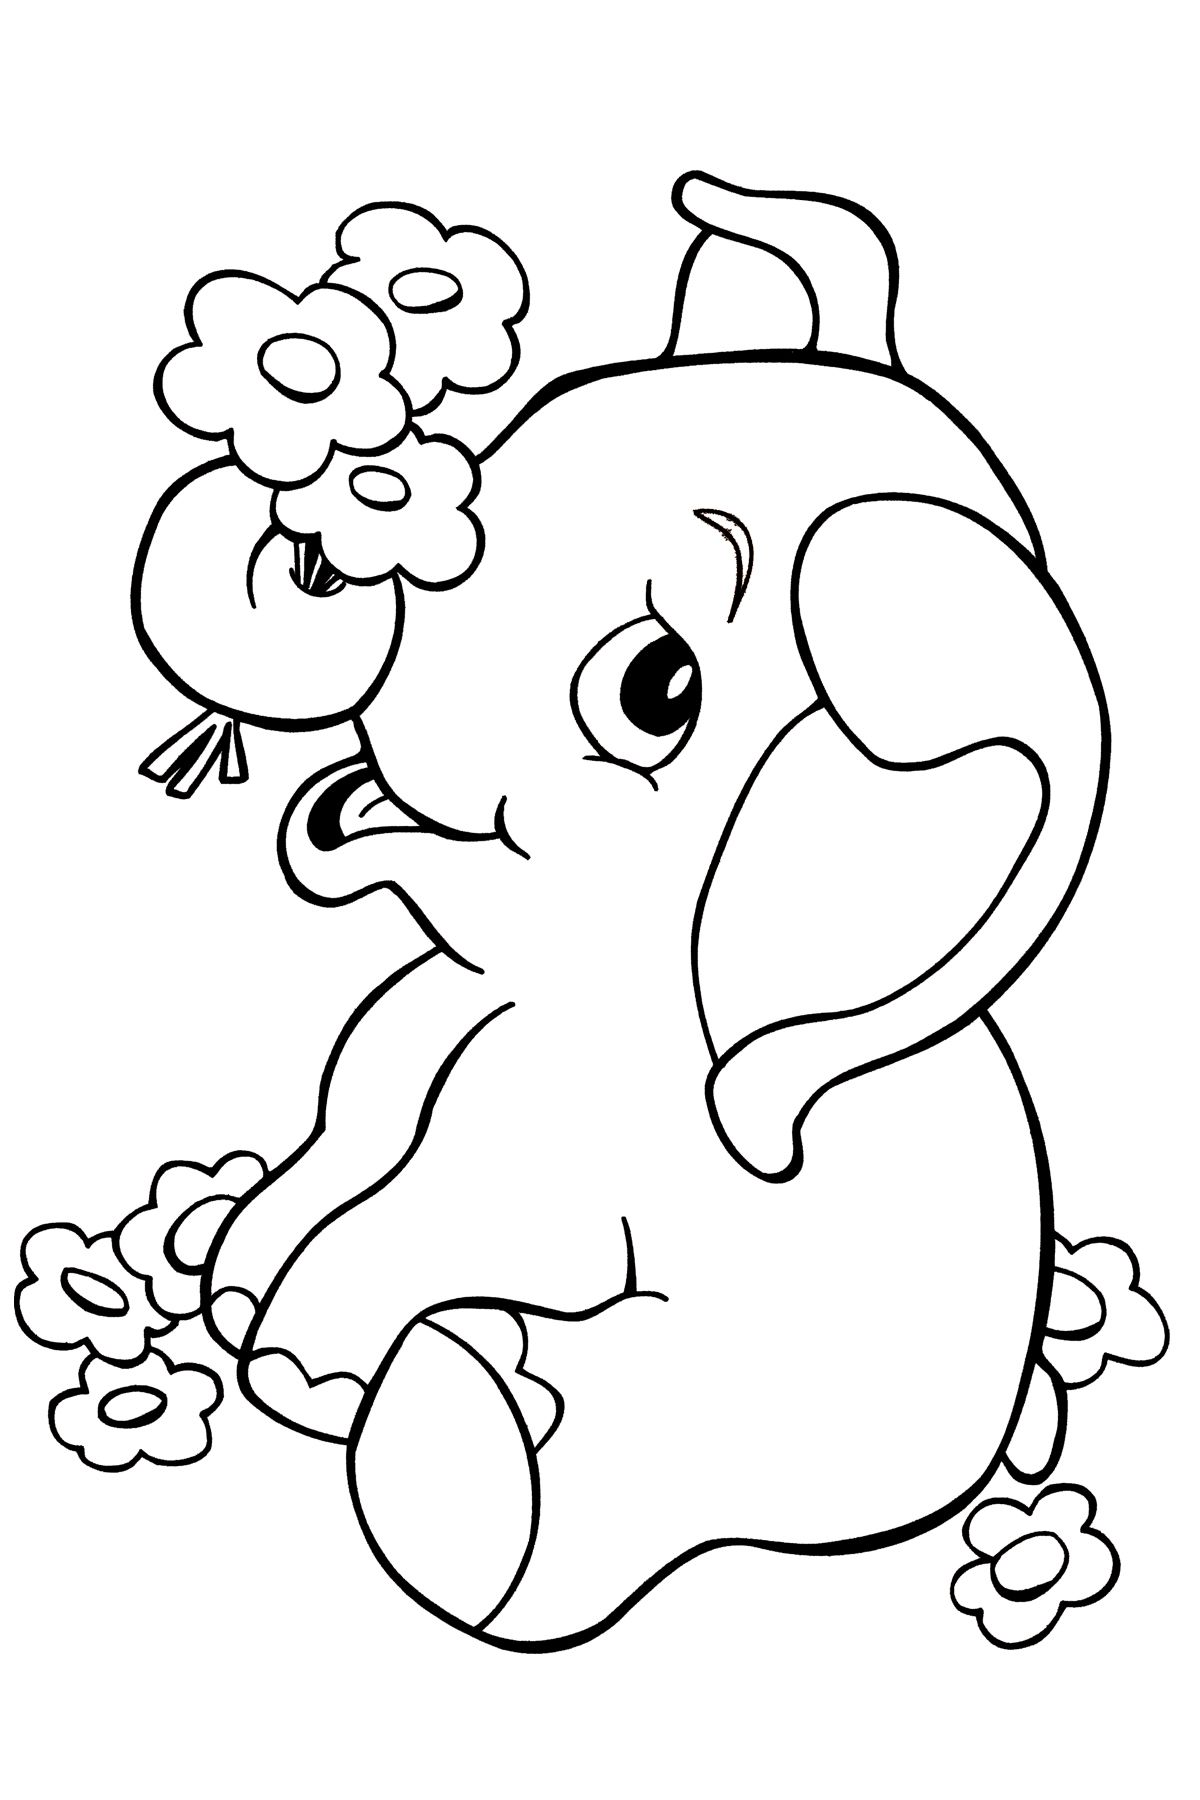 Elephant coloring pages free - Free Baby Elephant Coloring Pages